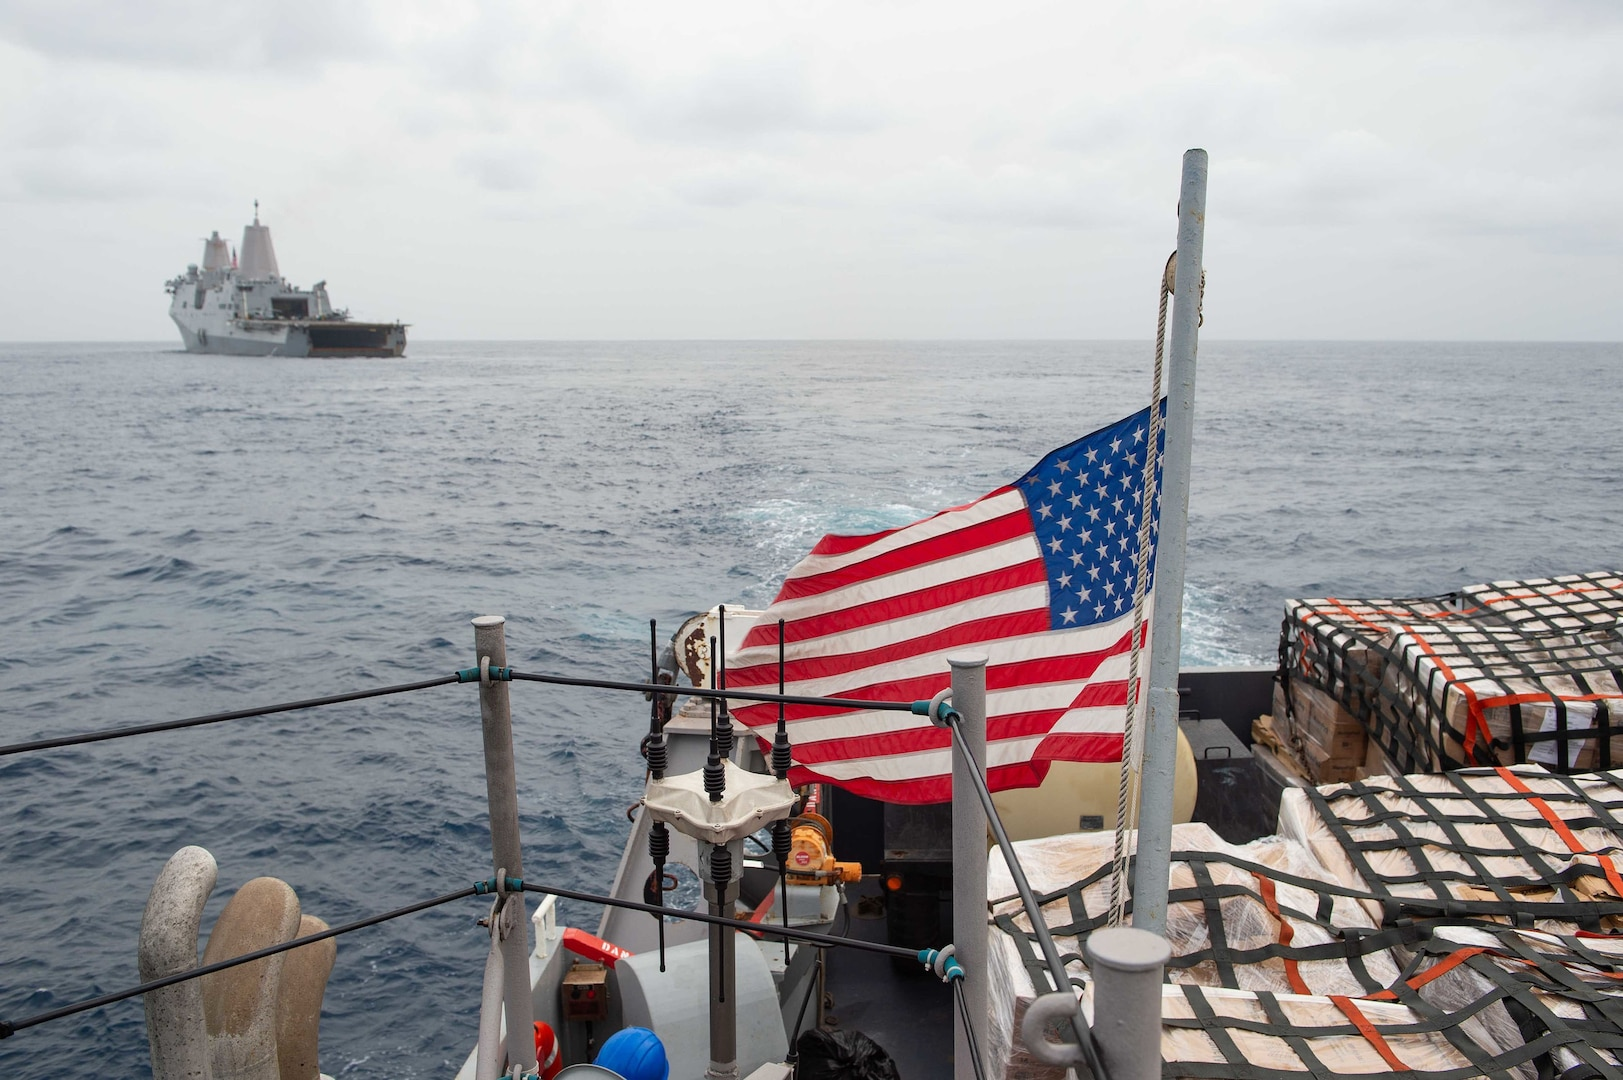 An LCU departs USS Arlington (LPD 24) to deliver food to the Port of Jérémie, Haiti in support of a USAID and Joint Task Force-Haiti humanitarian aid mission.